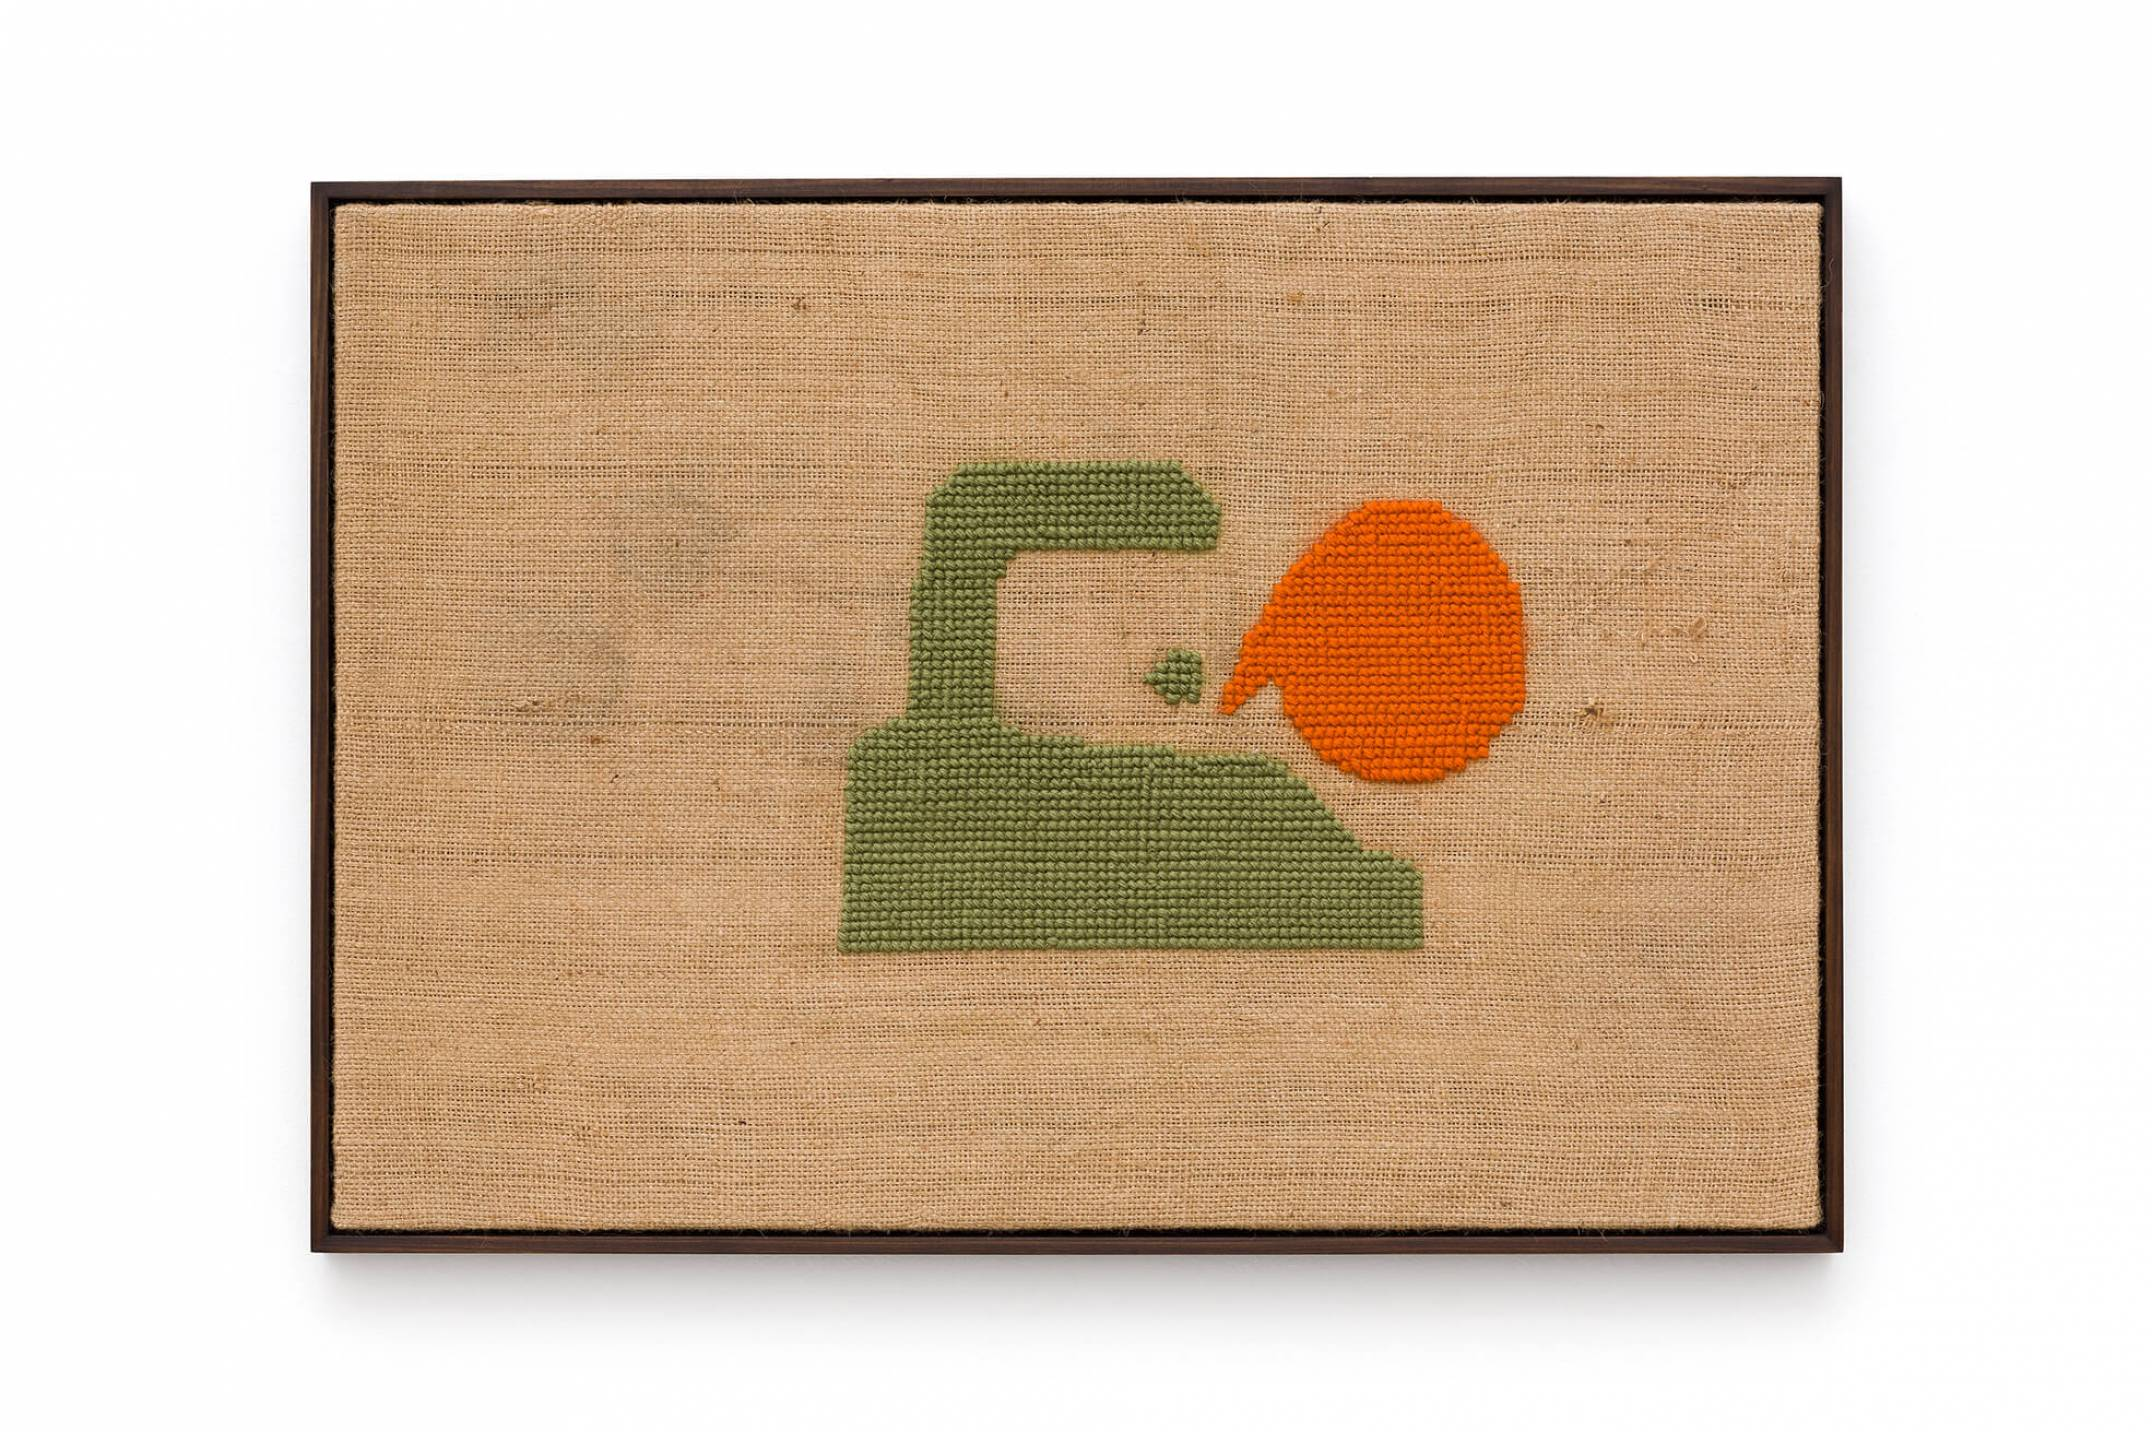 Alexandre da Cunha,<em>&nbsp;Fair Trade</em>, 2015, embroidered on jutebag in collaboration with Luisa Strina, 65,5 × 93 cm - Mendes Wood DM